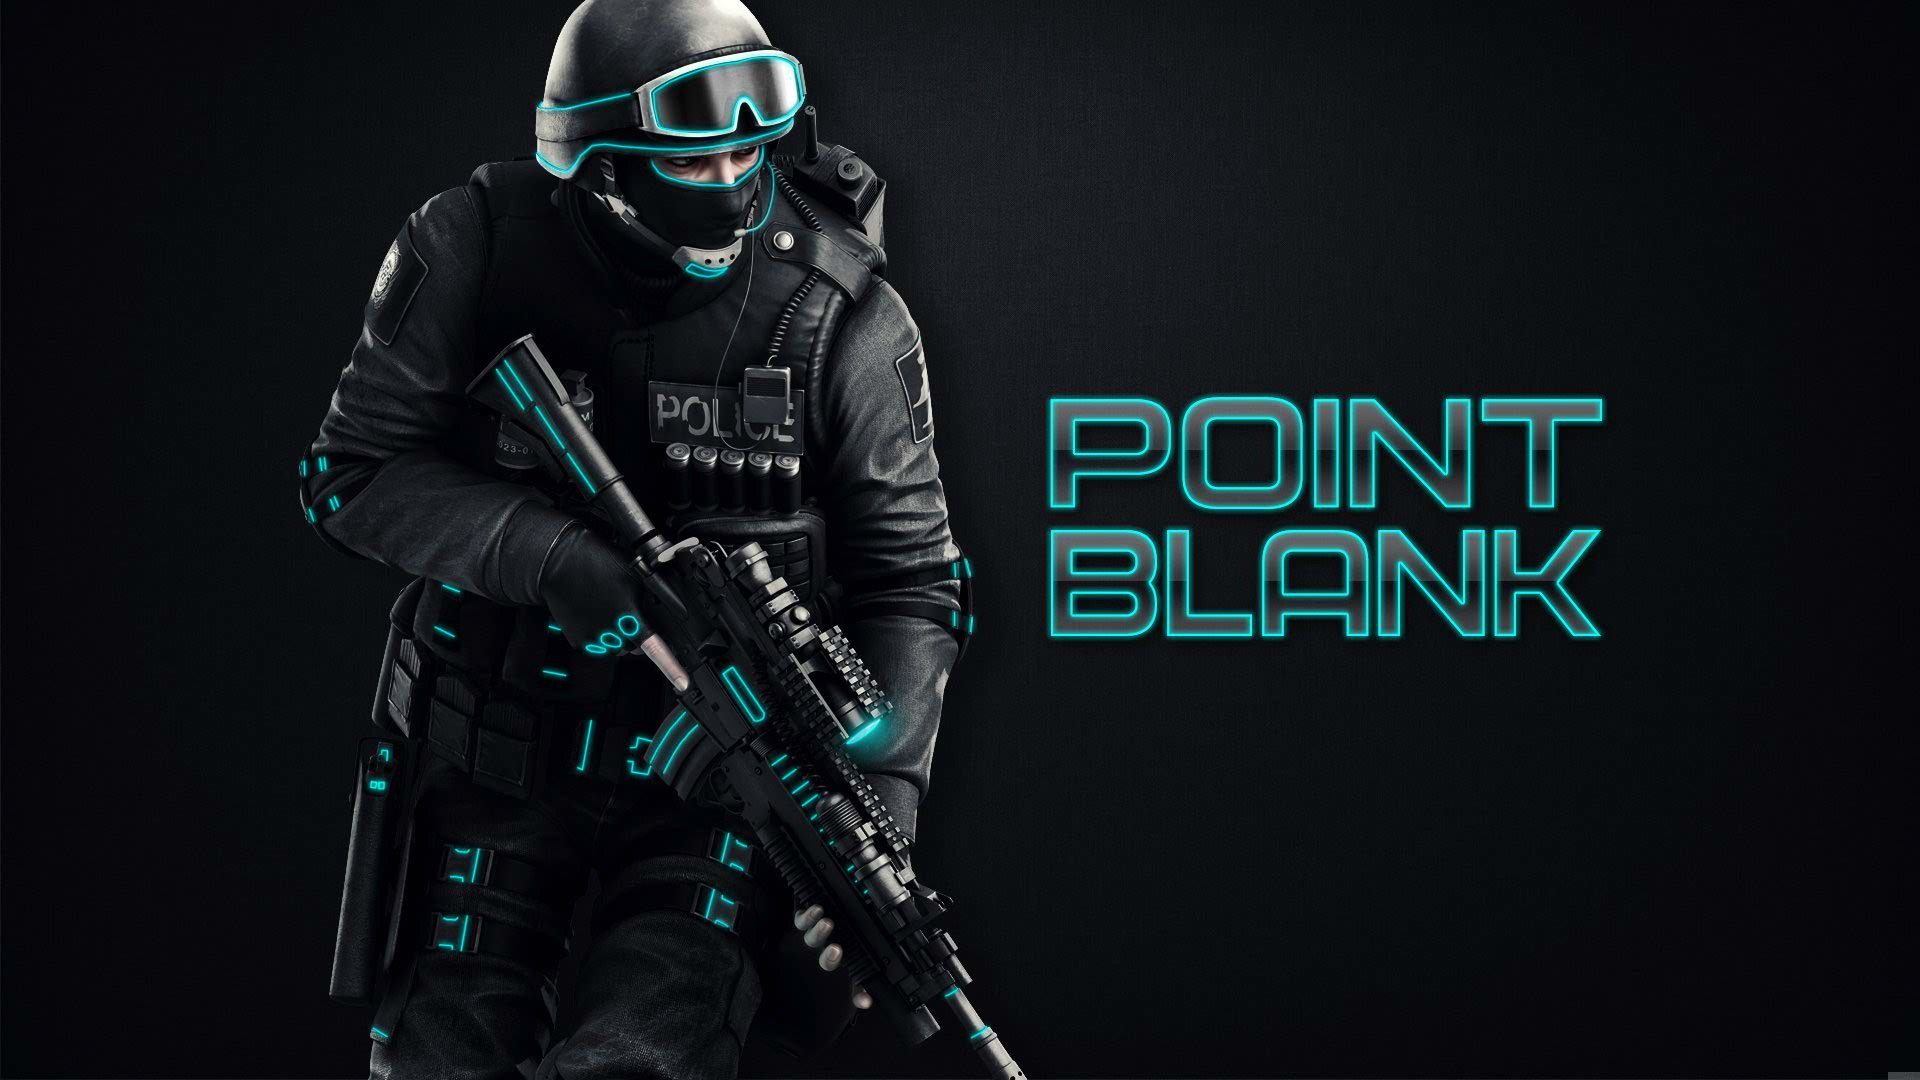 Res: 1920x1080, Point Blank HD Wallpapers ~ Toptenpack.com